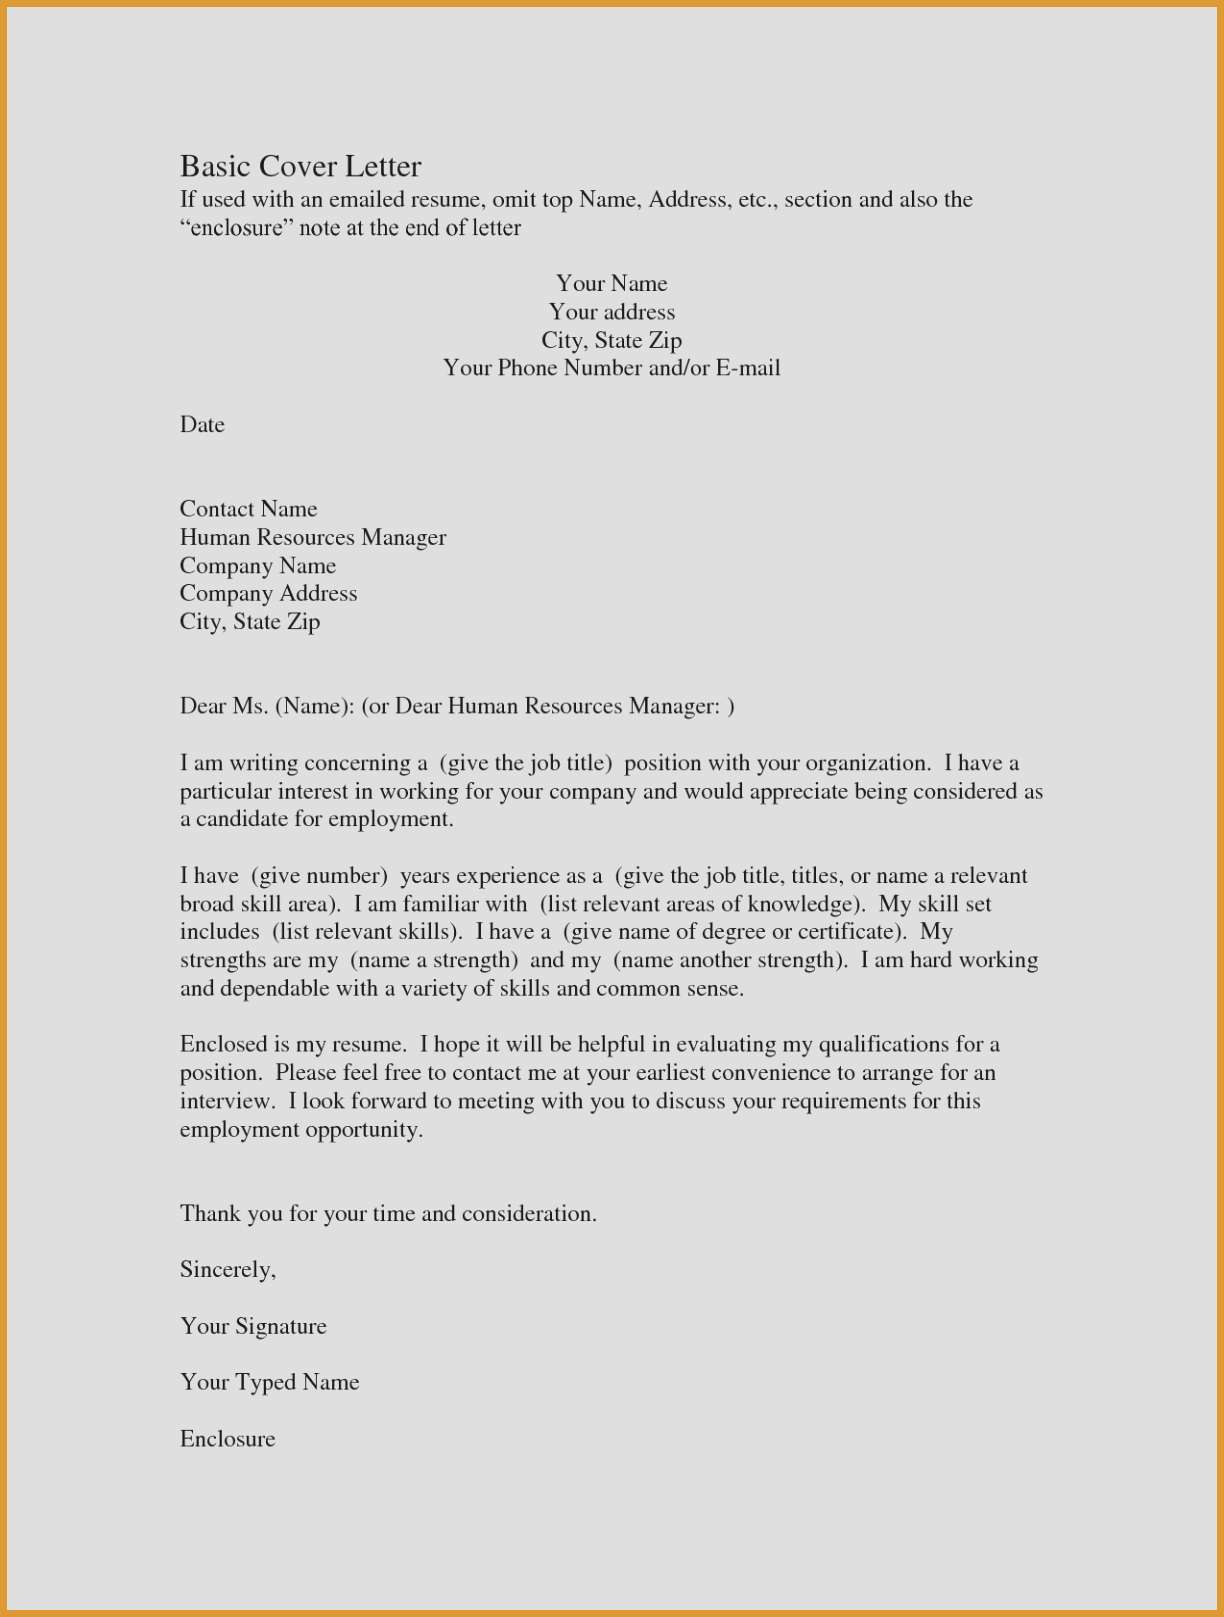 Quick Easy Cover Letter Template - Basic Cover Letters for Resumes Example Cover Letter for Resume